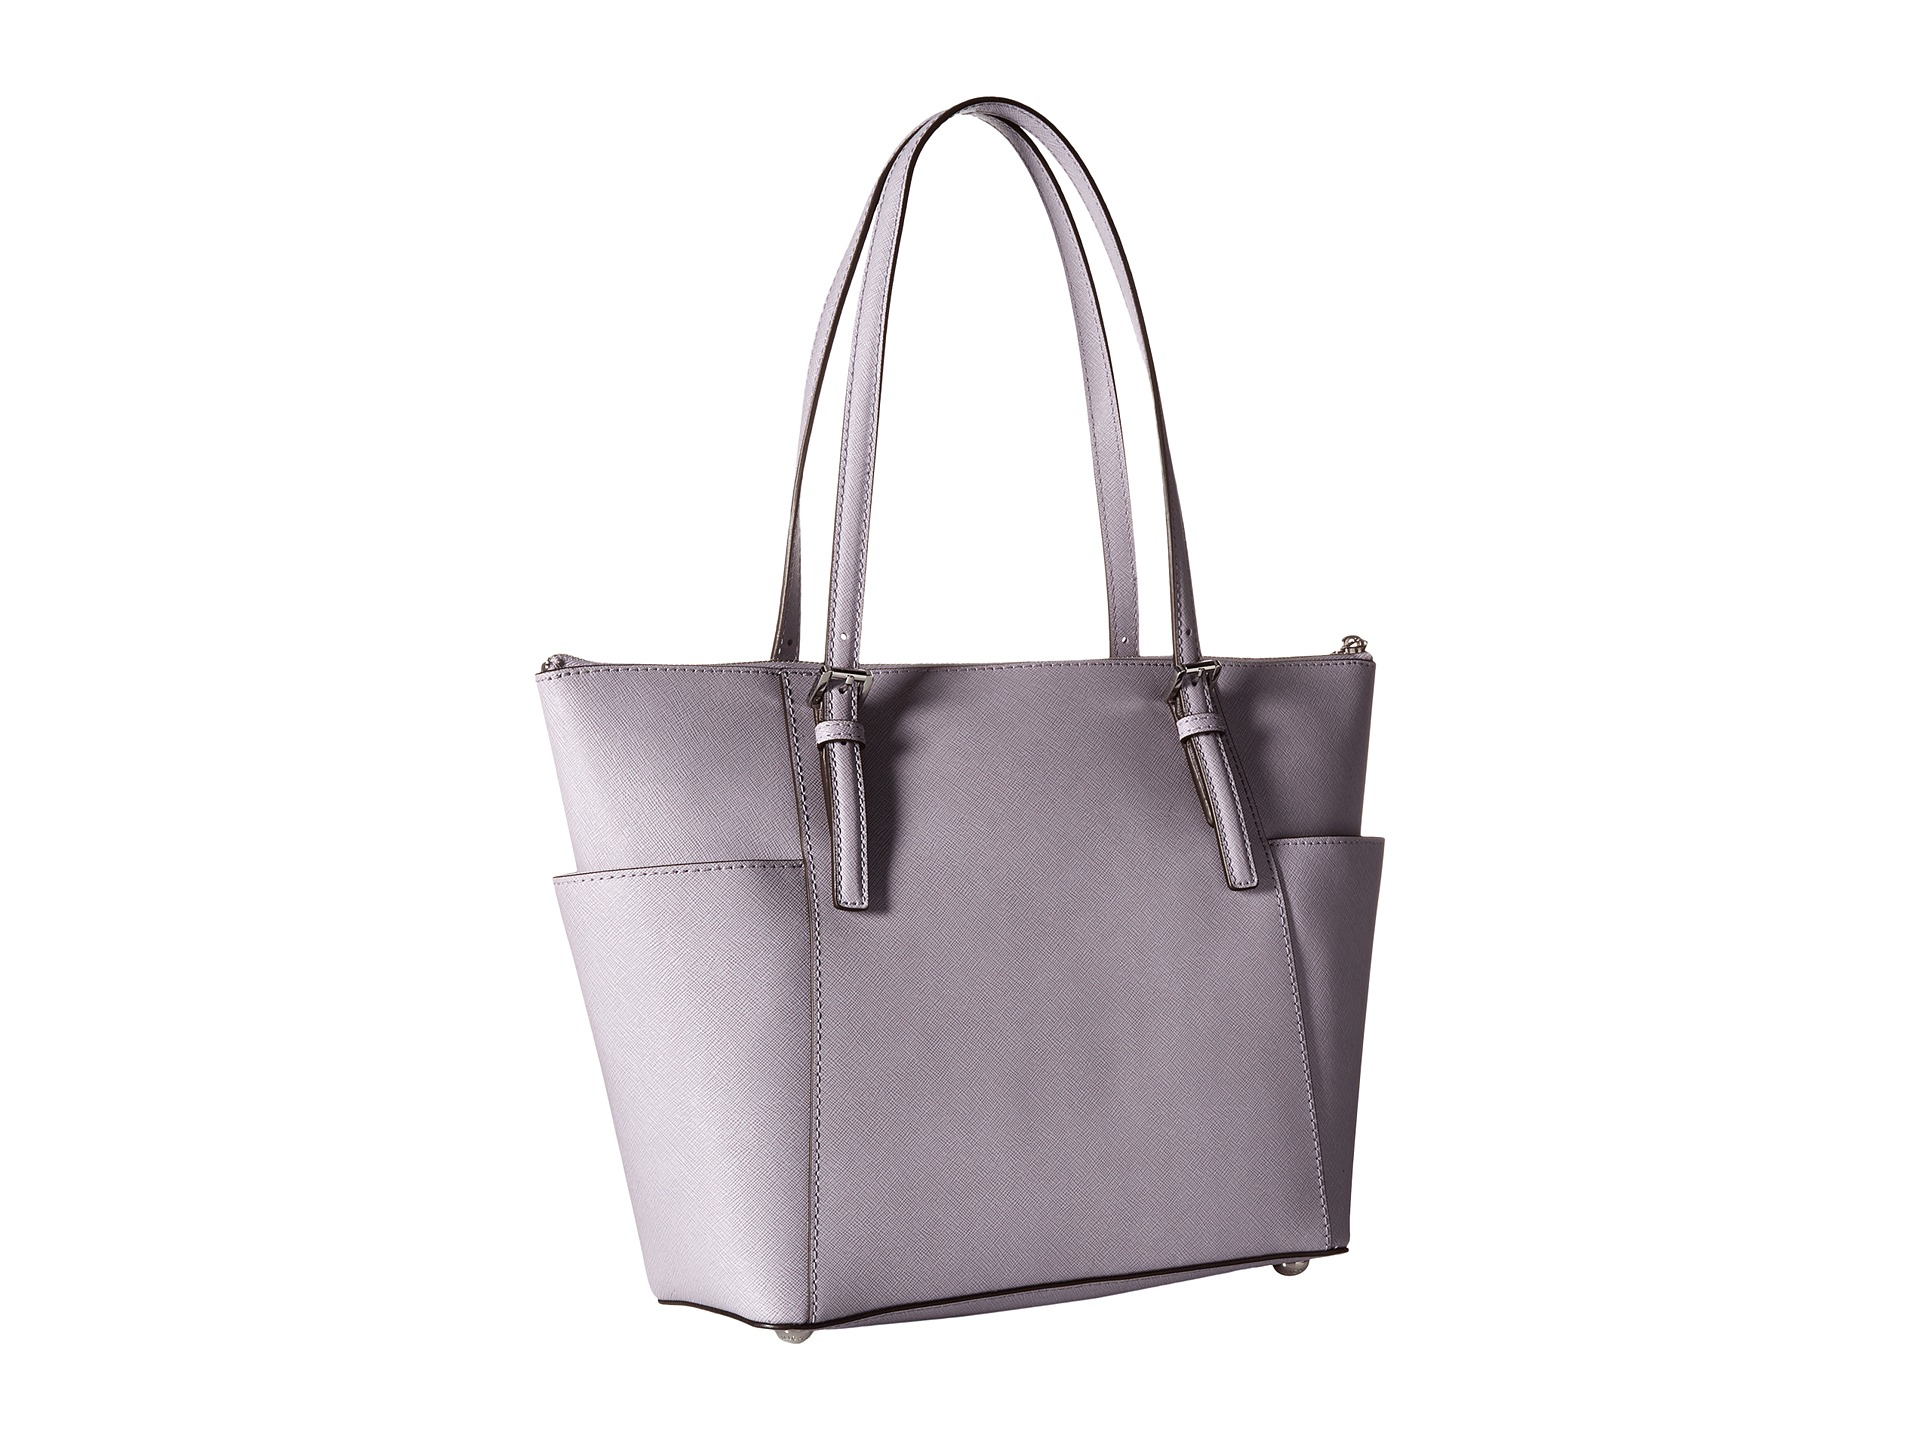 24f3df9b4502 MICHAEL Michael Kors Jet Set Saffiano Top Zip Tote in Purple - Lyst